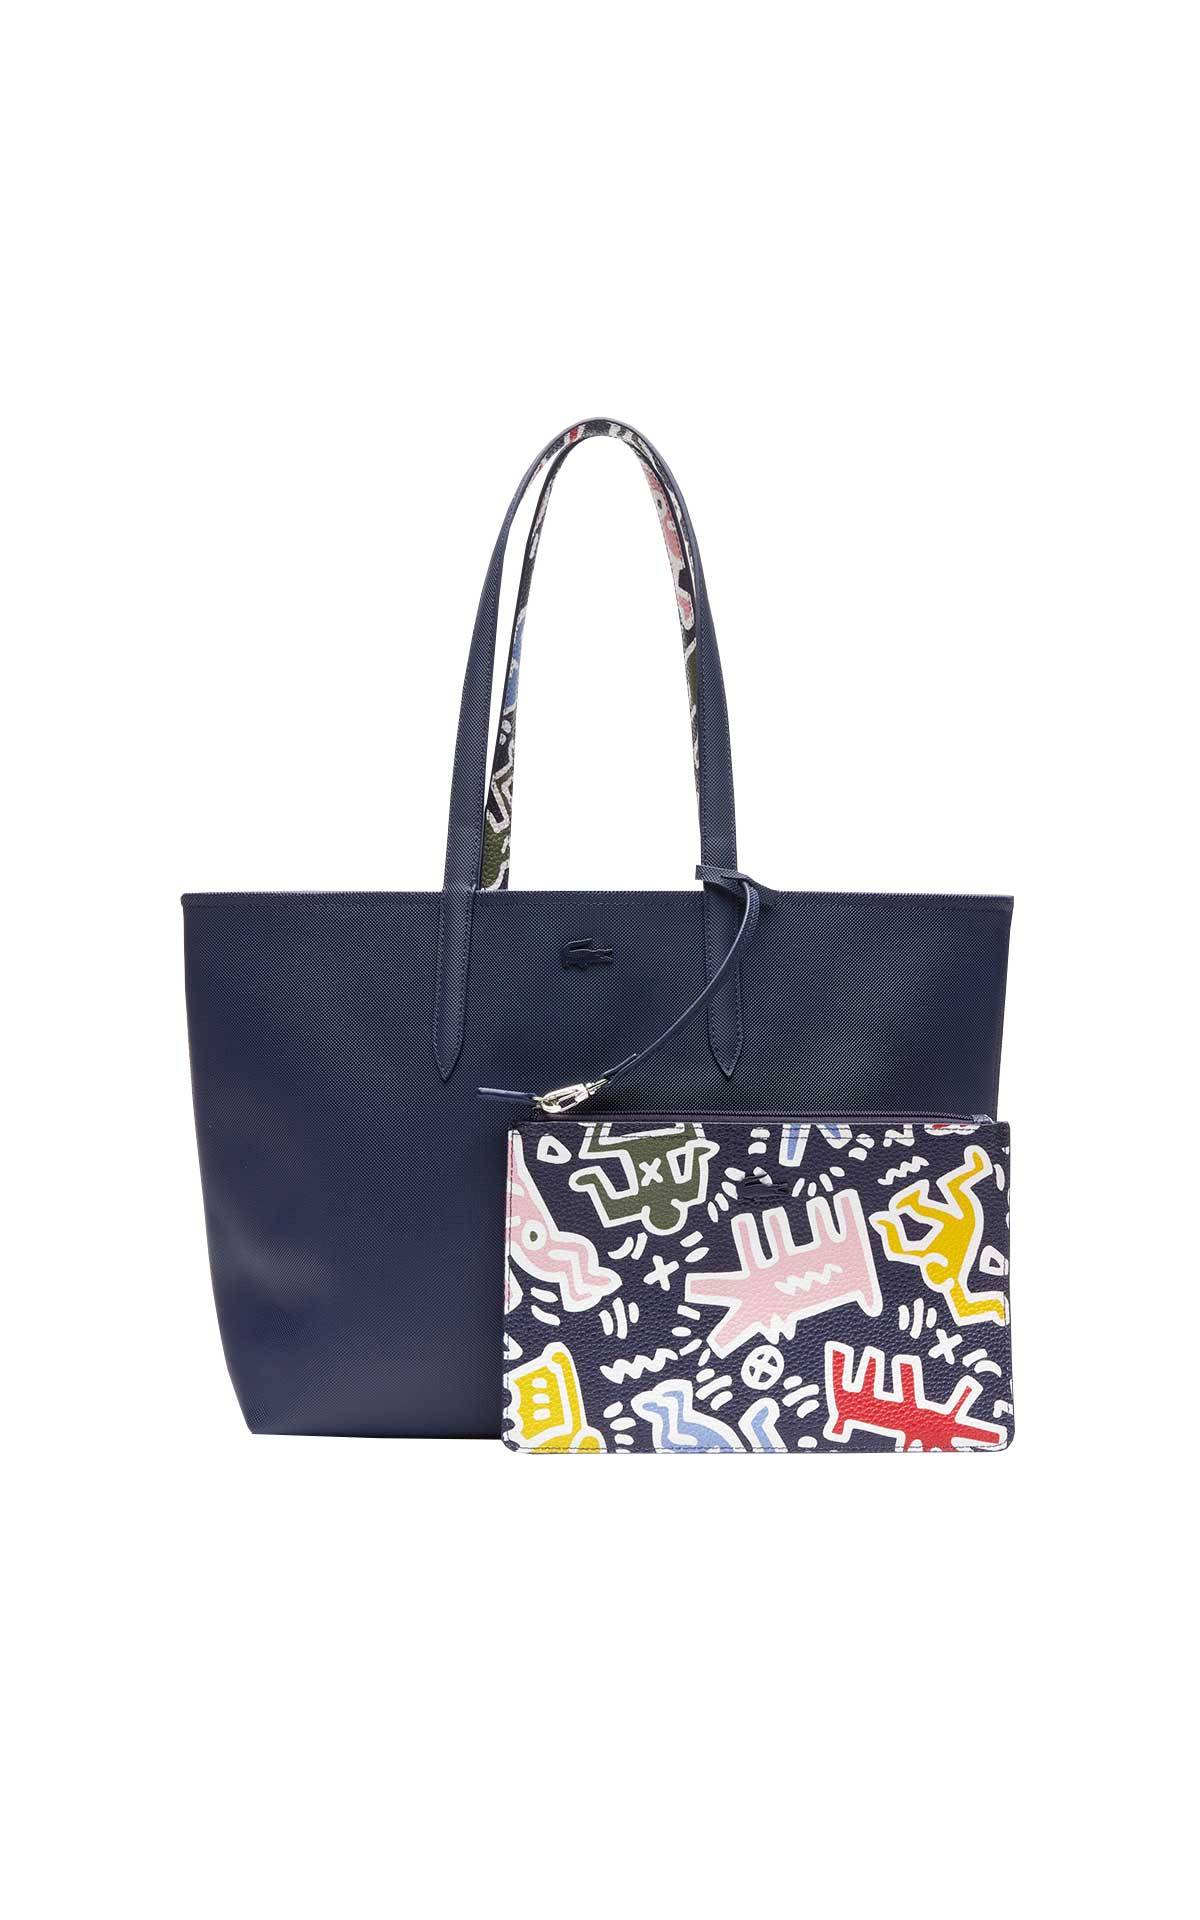 Leather navy blue tote bag for woman Lacoste